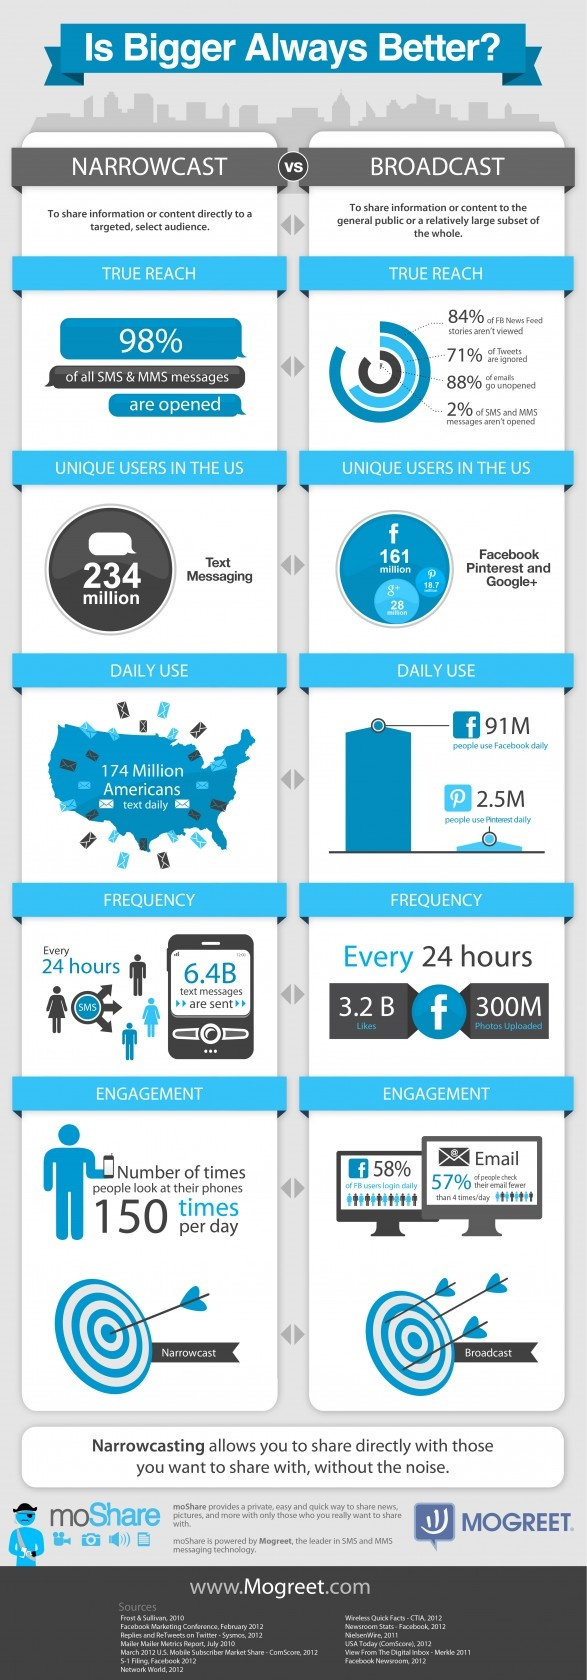 Social Media vs. Text Messaging   Visit our new infographic gallery at visualoop.com/